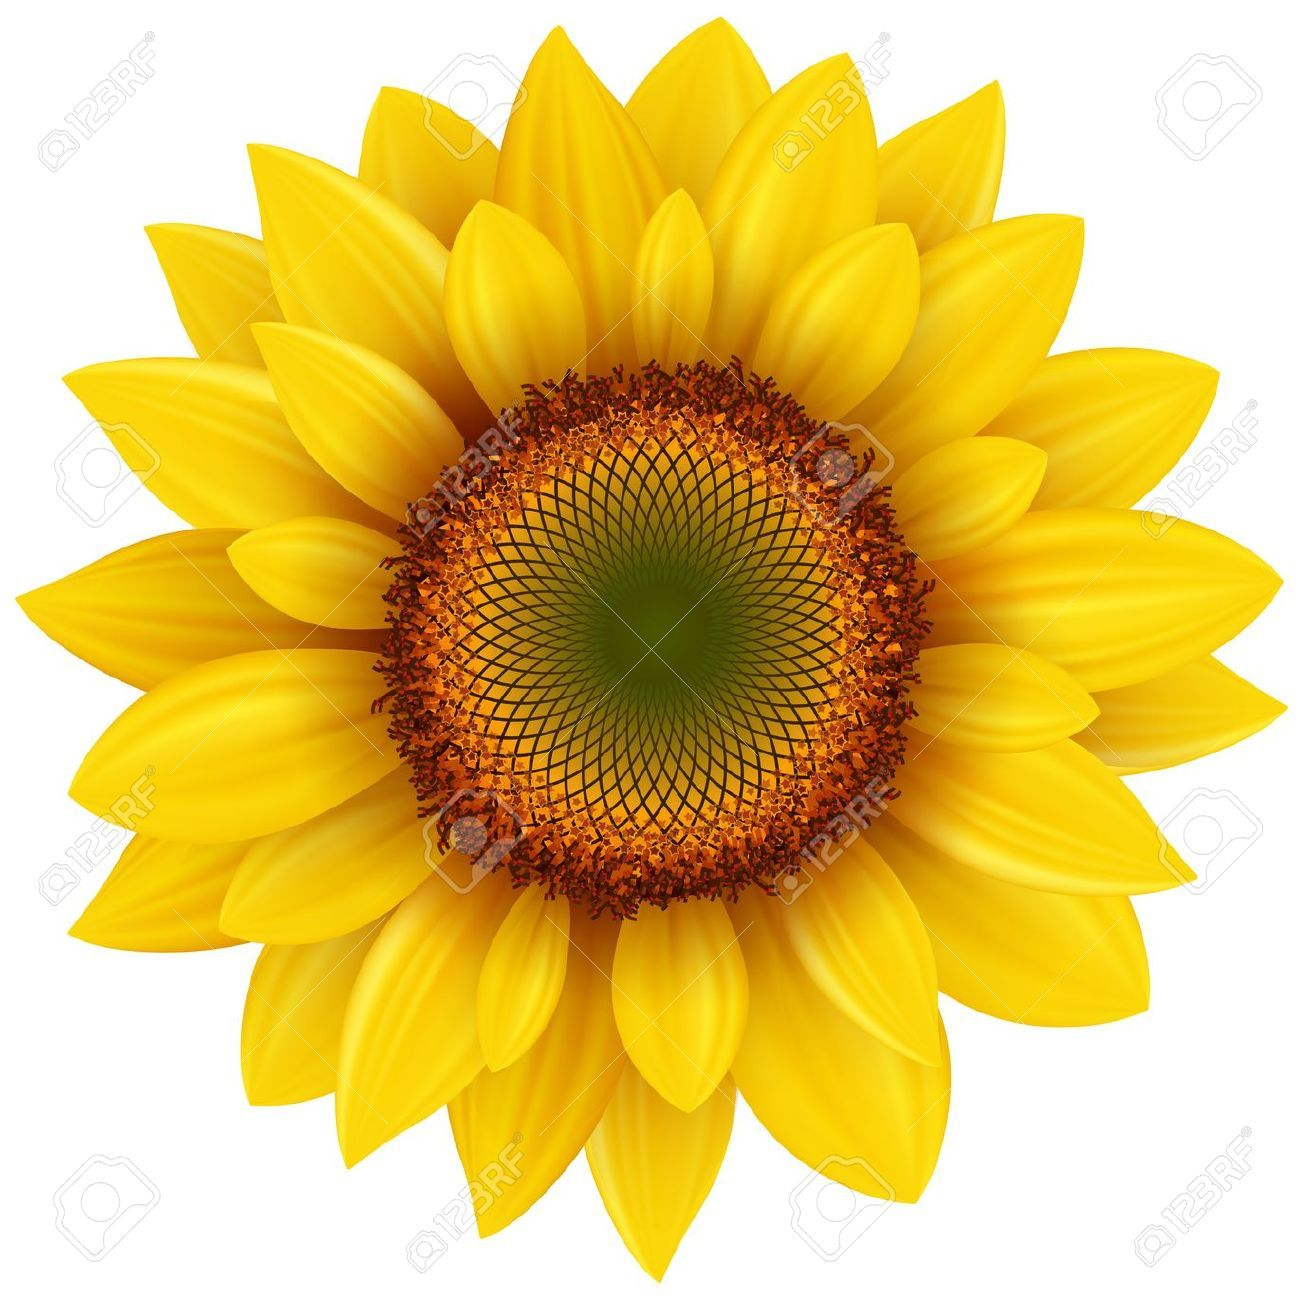 Sunflower clipart vector png freeuse download Stock Vector | Puncture Wounds & Permanent Art | Sunflower ... png freeuse download